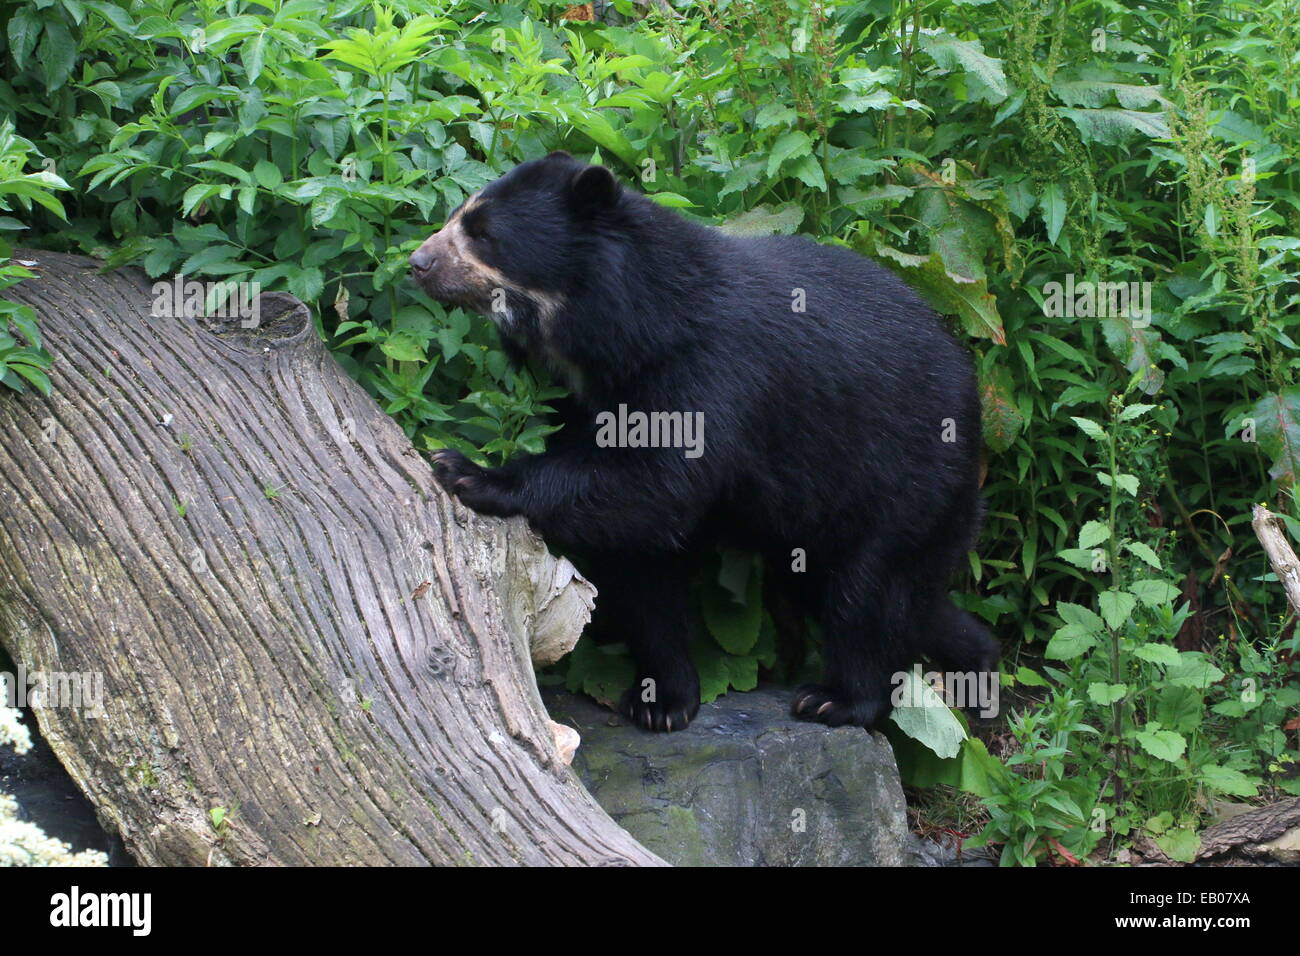 Spectacled or  Andean bear (Tremarctos ornatus) climbing a tree trunk Stock Photo